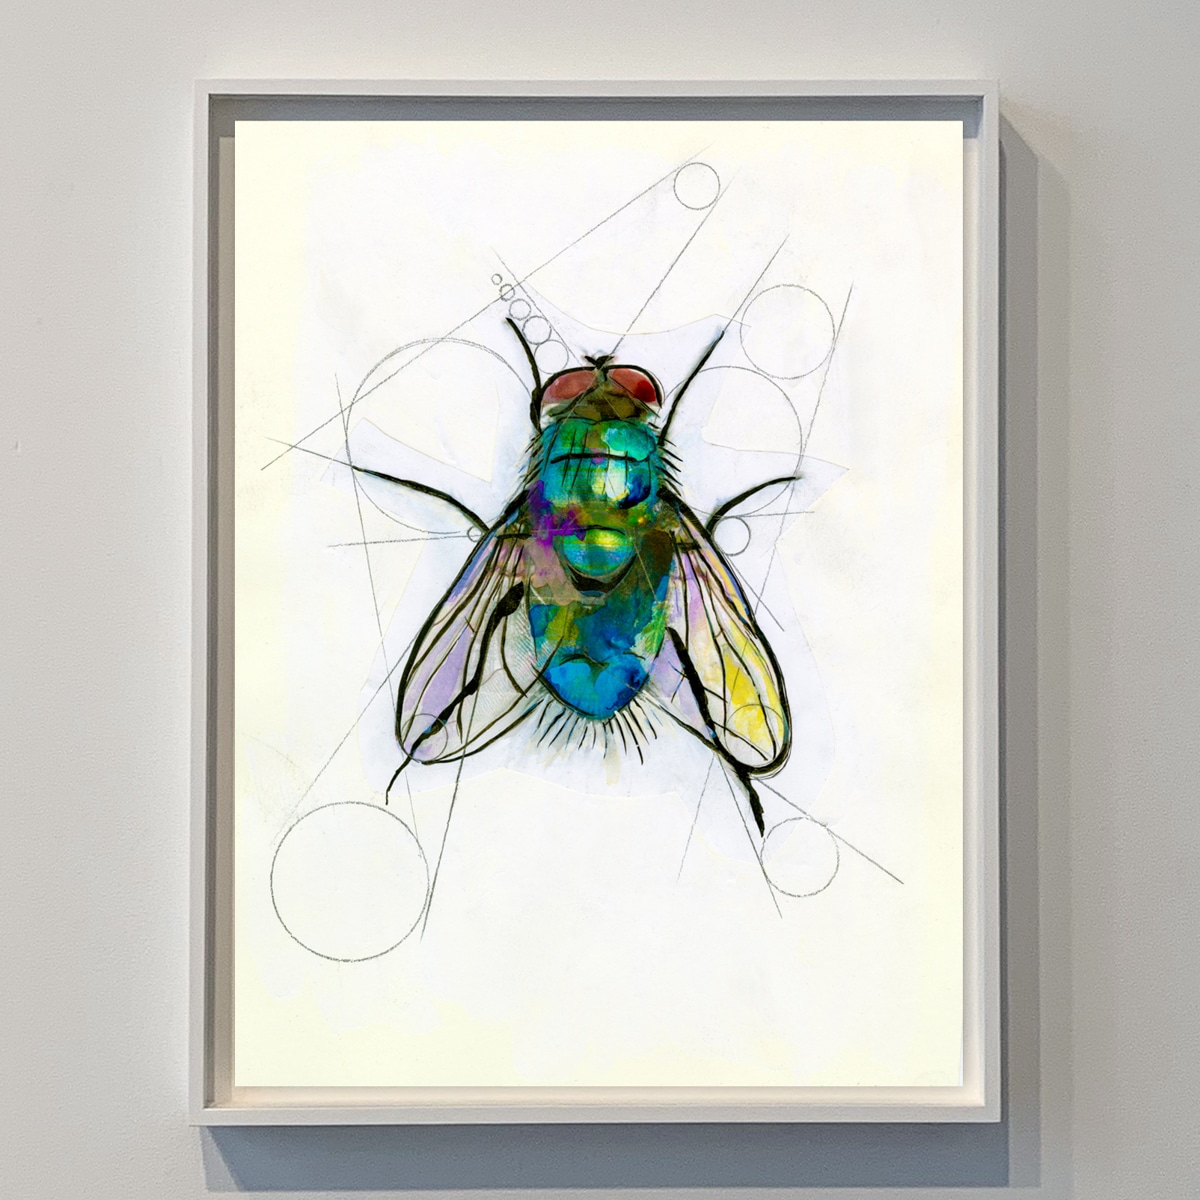 contemporary artwork of a fly